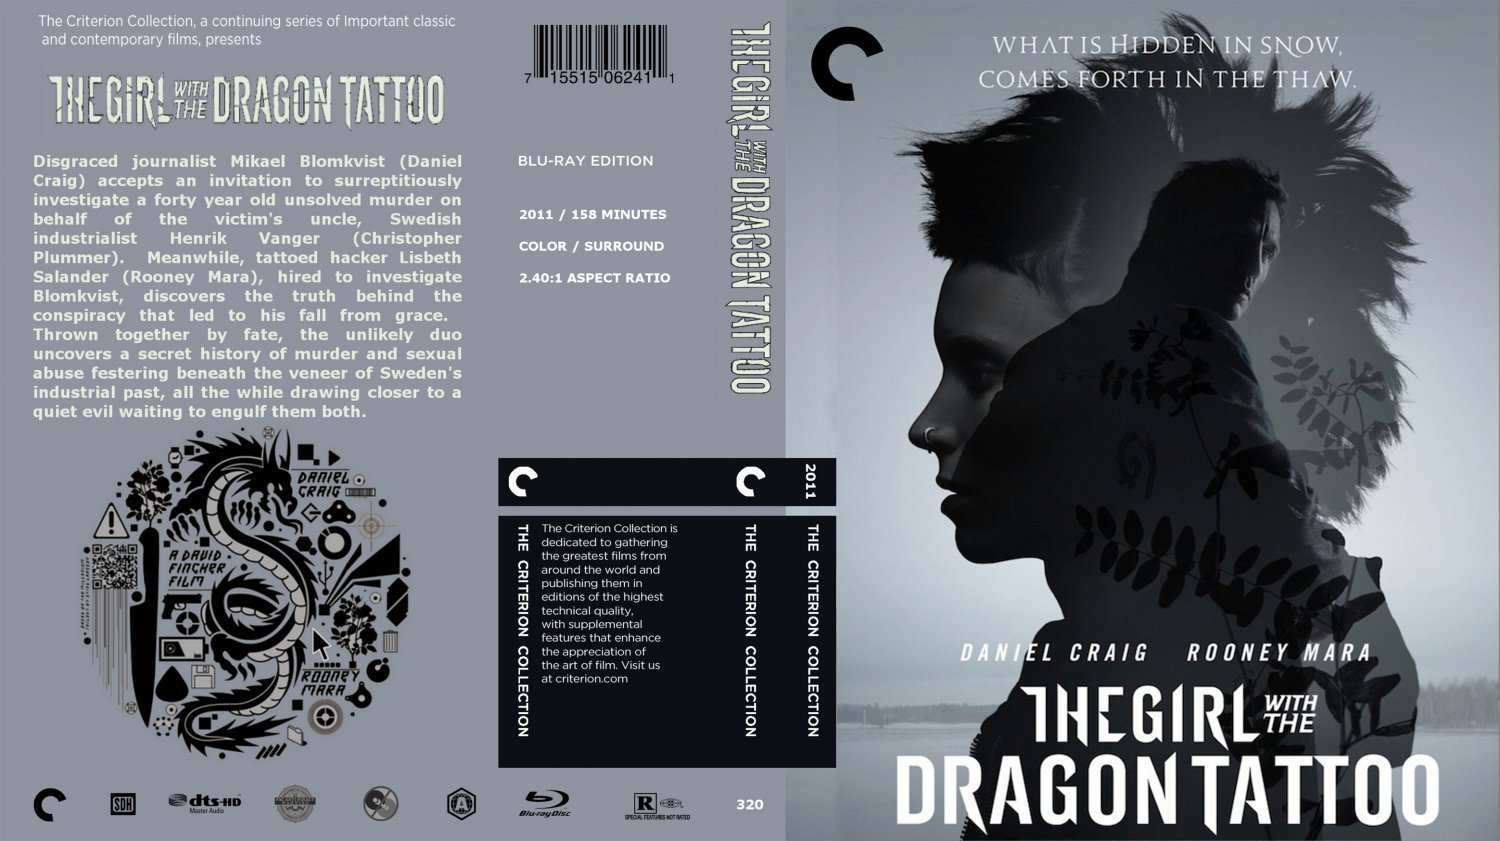 The girl with the dragon tattoo the criterion collection for The girl with the dragon tattoo soundtrack